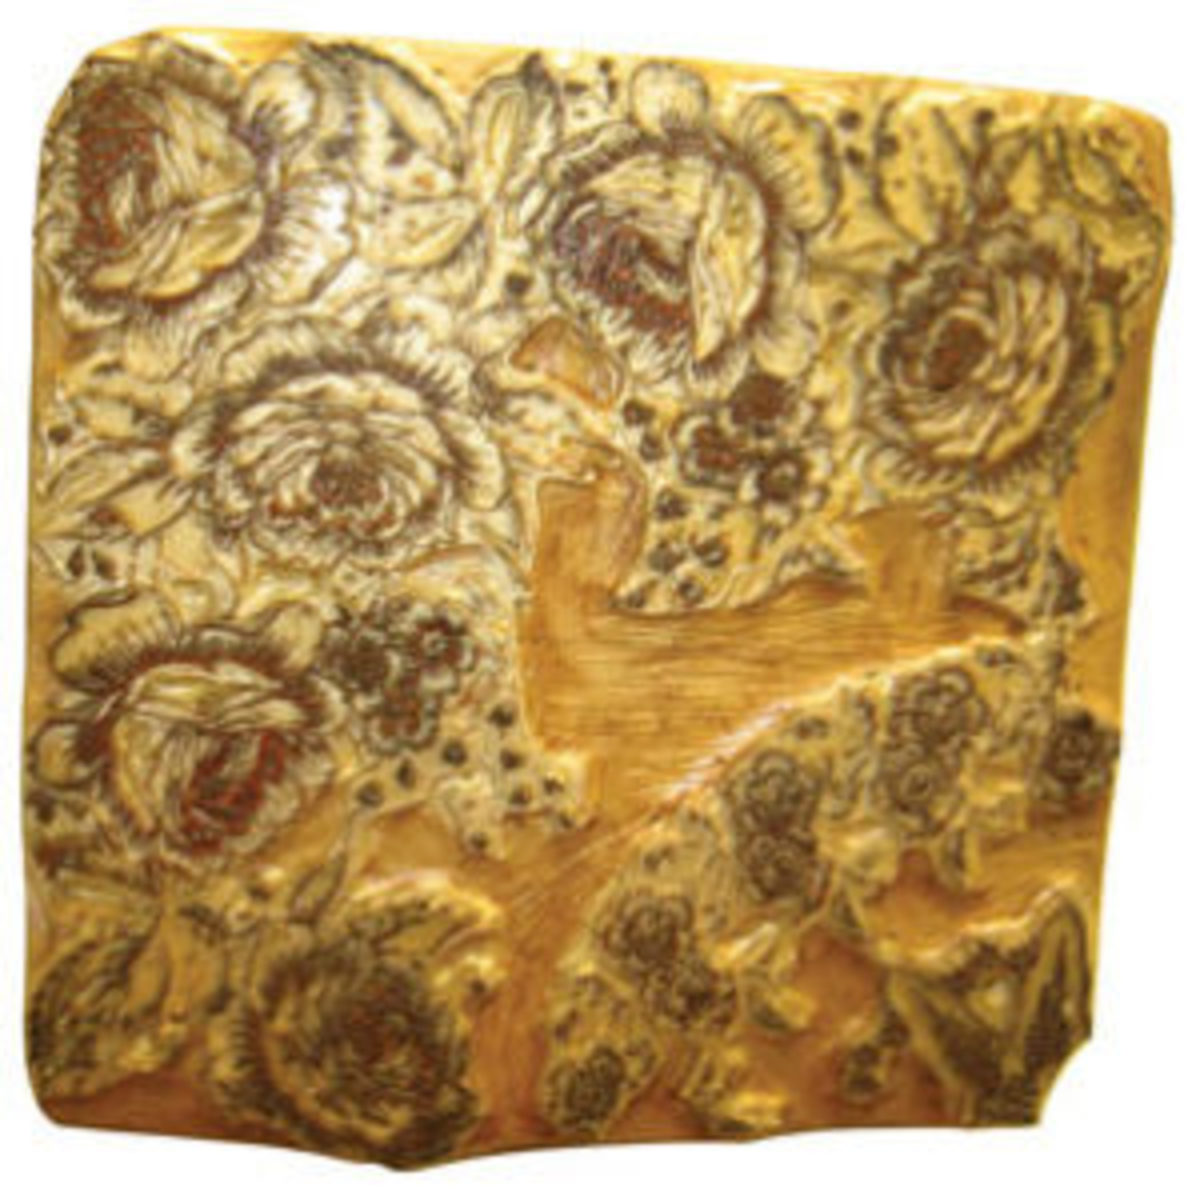 Another fantastic hand-carved wood block with large floral design. The block is over one foot square; $150+.